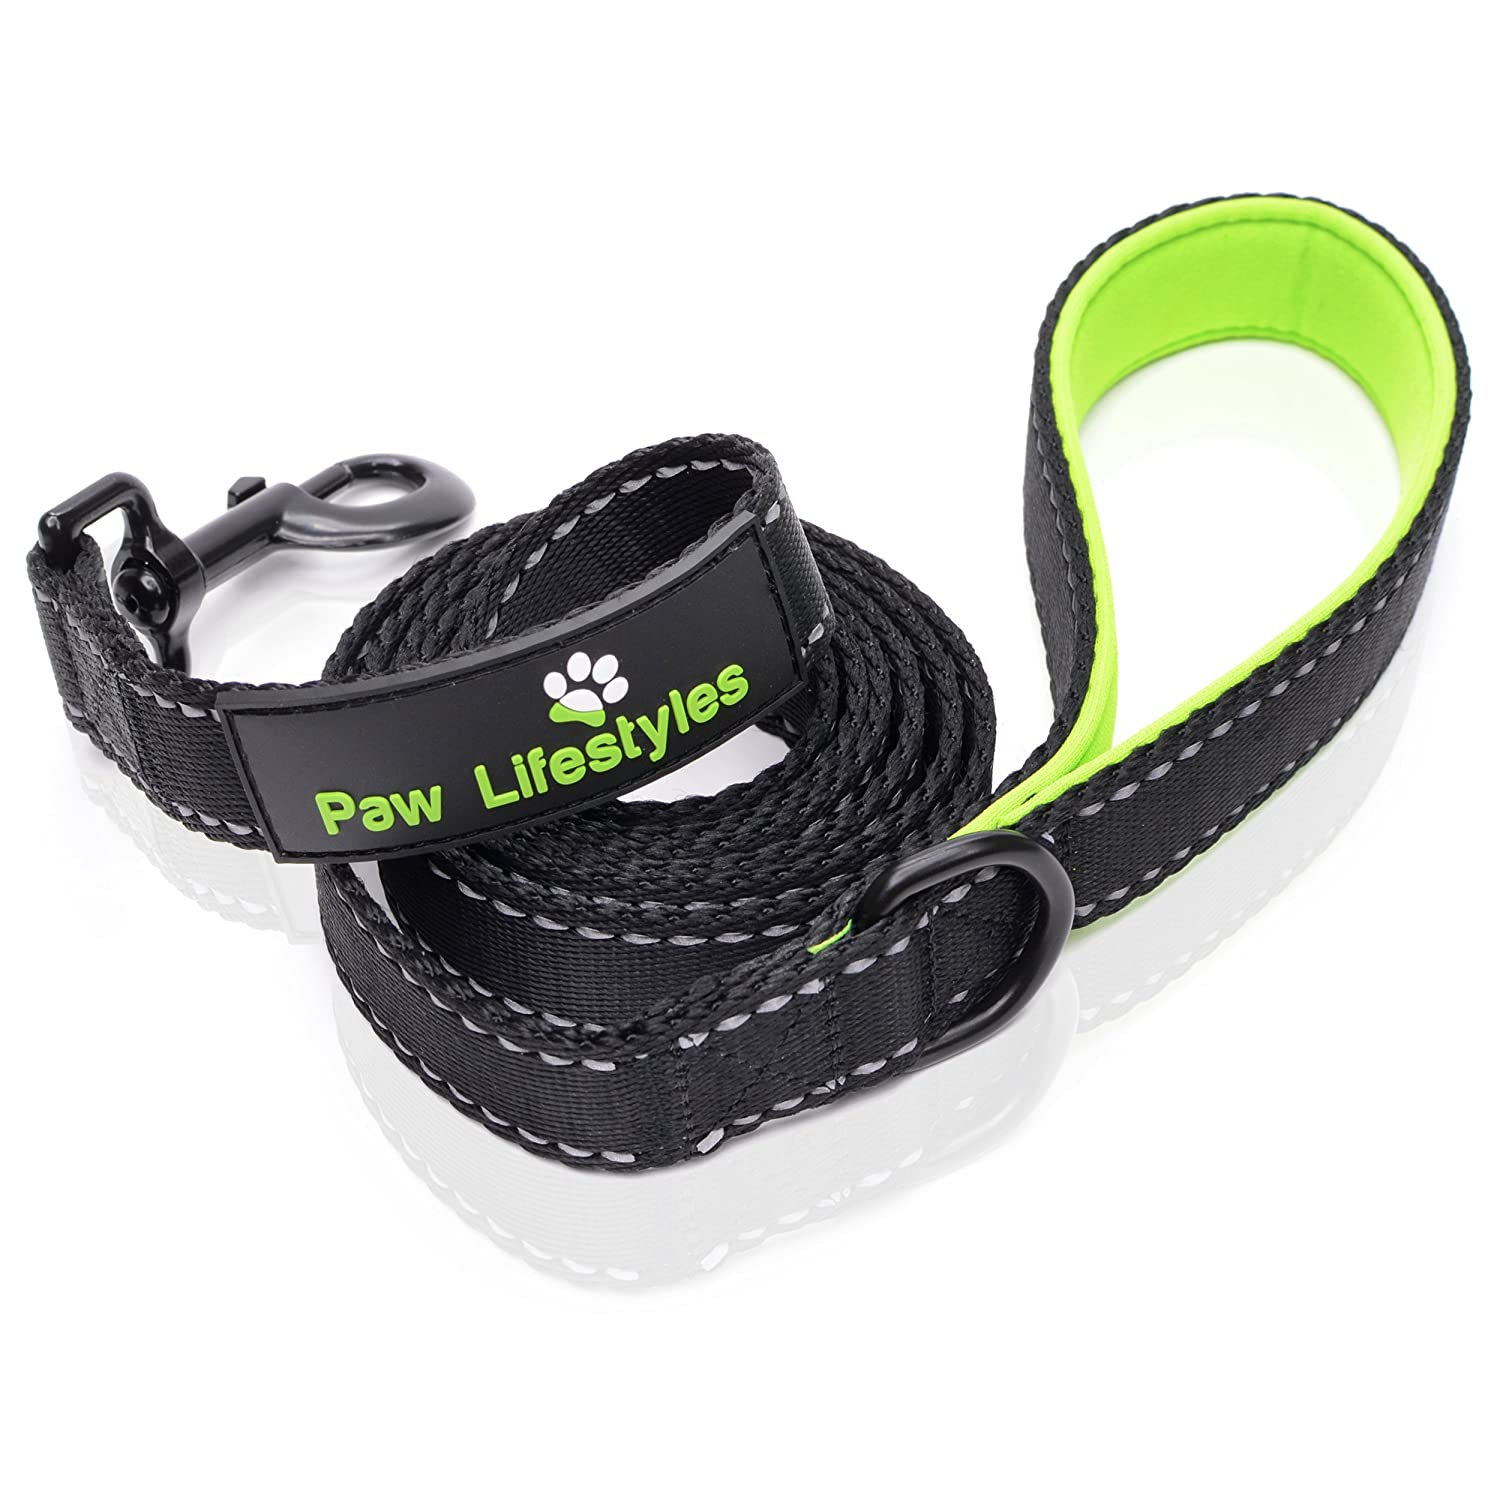 "Extra Heavy Duty Dog Leash by Paw Lifestyles – 3mm Thick, Soft Padded Handle For Comfort, 6ft long - 1"" Wide, Perfect Leash for Medium and Large Dogs, Dog Training"